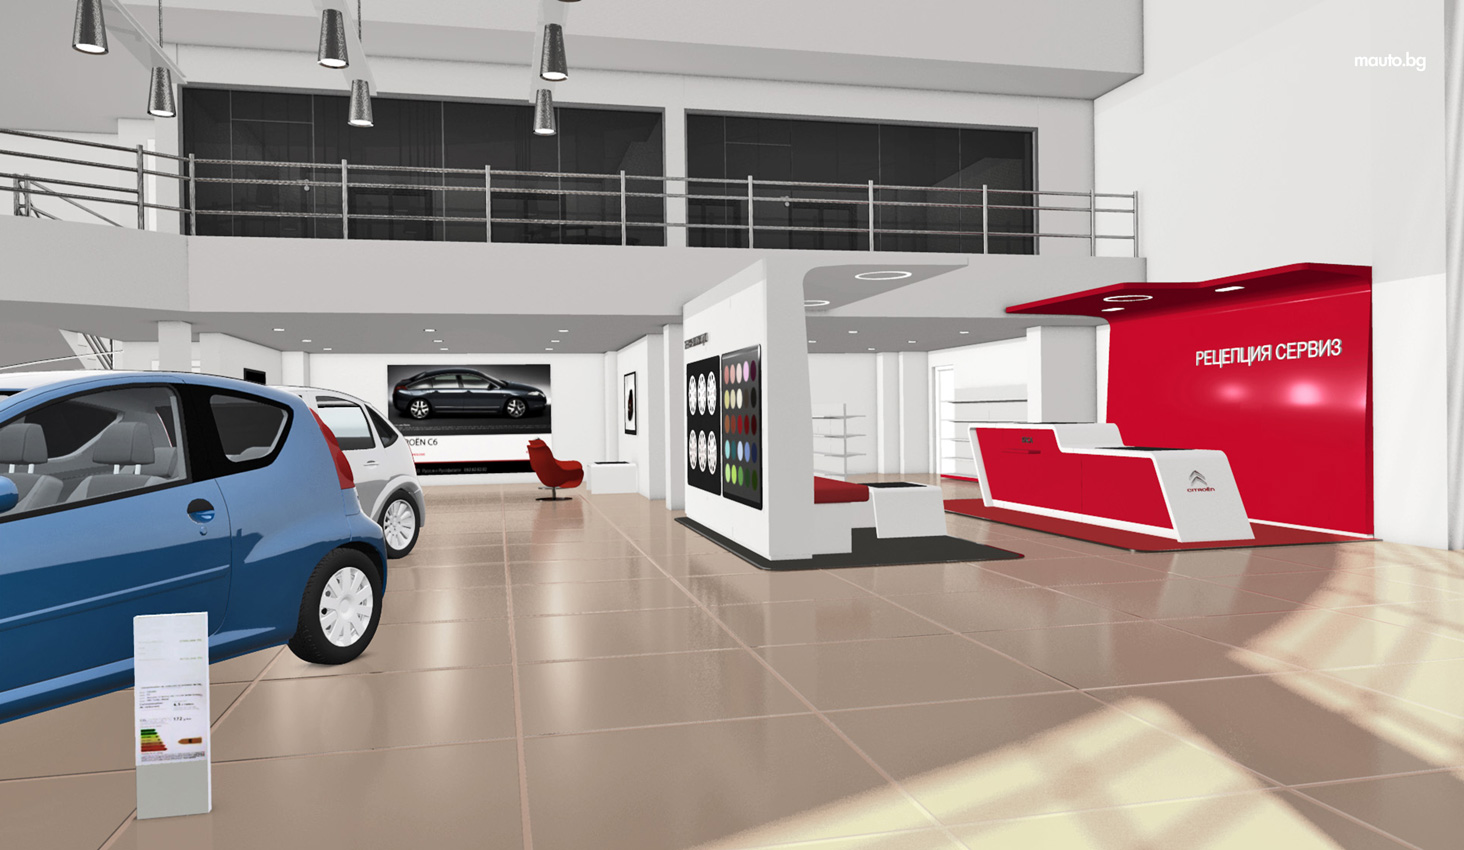 3d visualisations of the new citro n showroom in ruse for minchev auto stylish web graphic. Black Bedroom Furniture Sets. Home Design Ideas